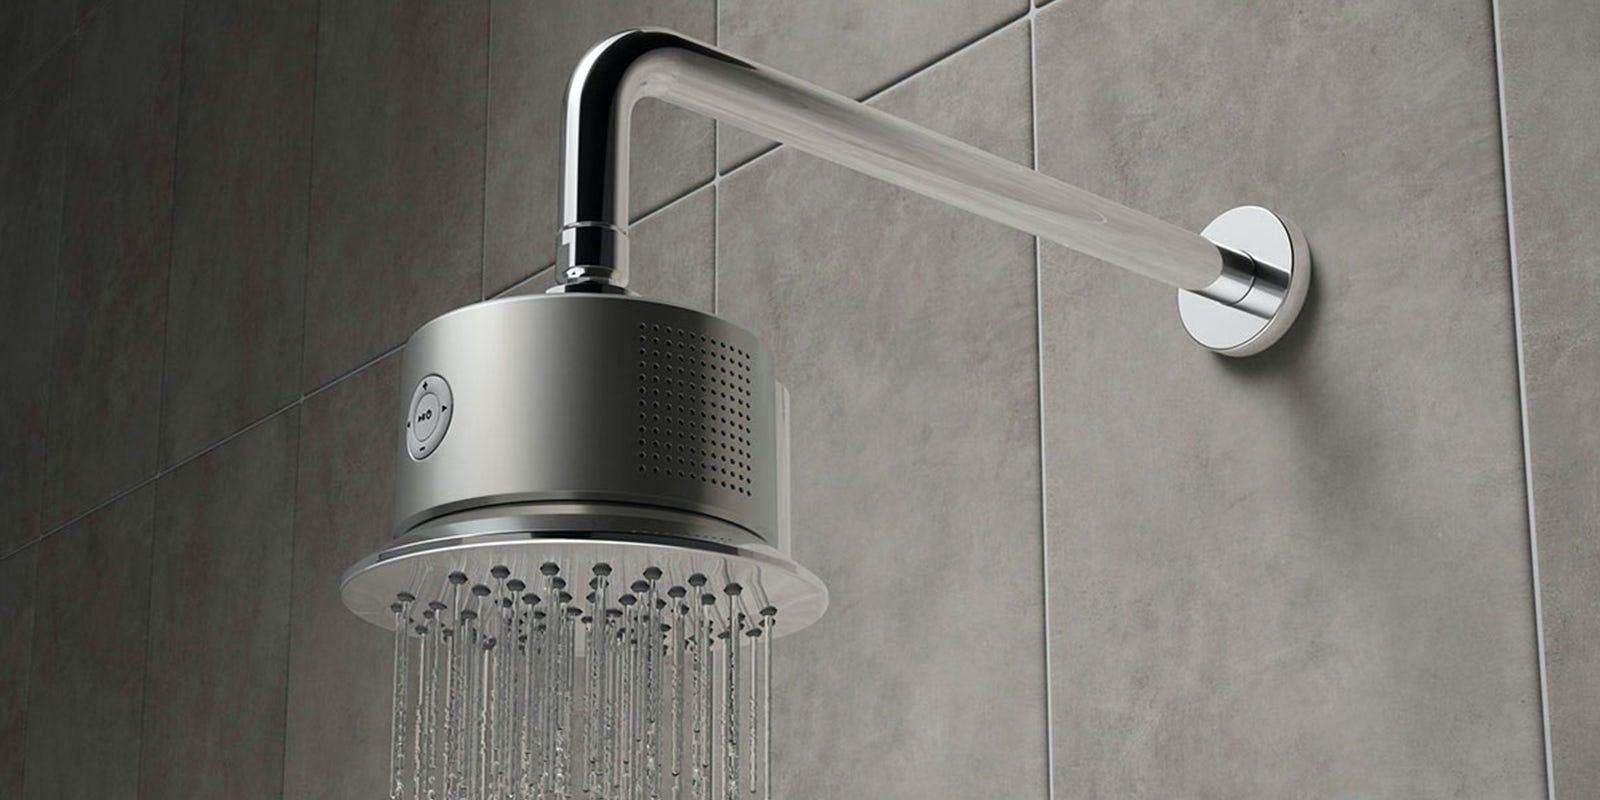 Which songs do you like to sing in the shower?